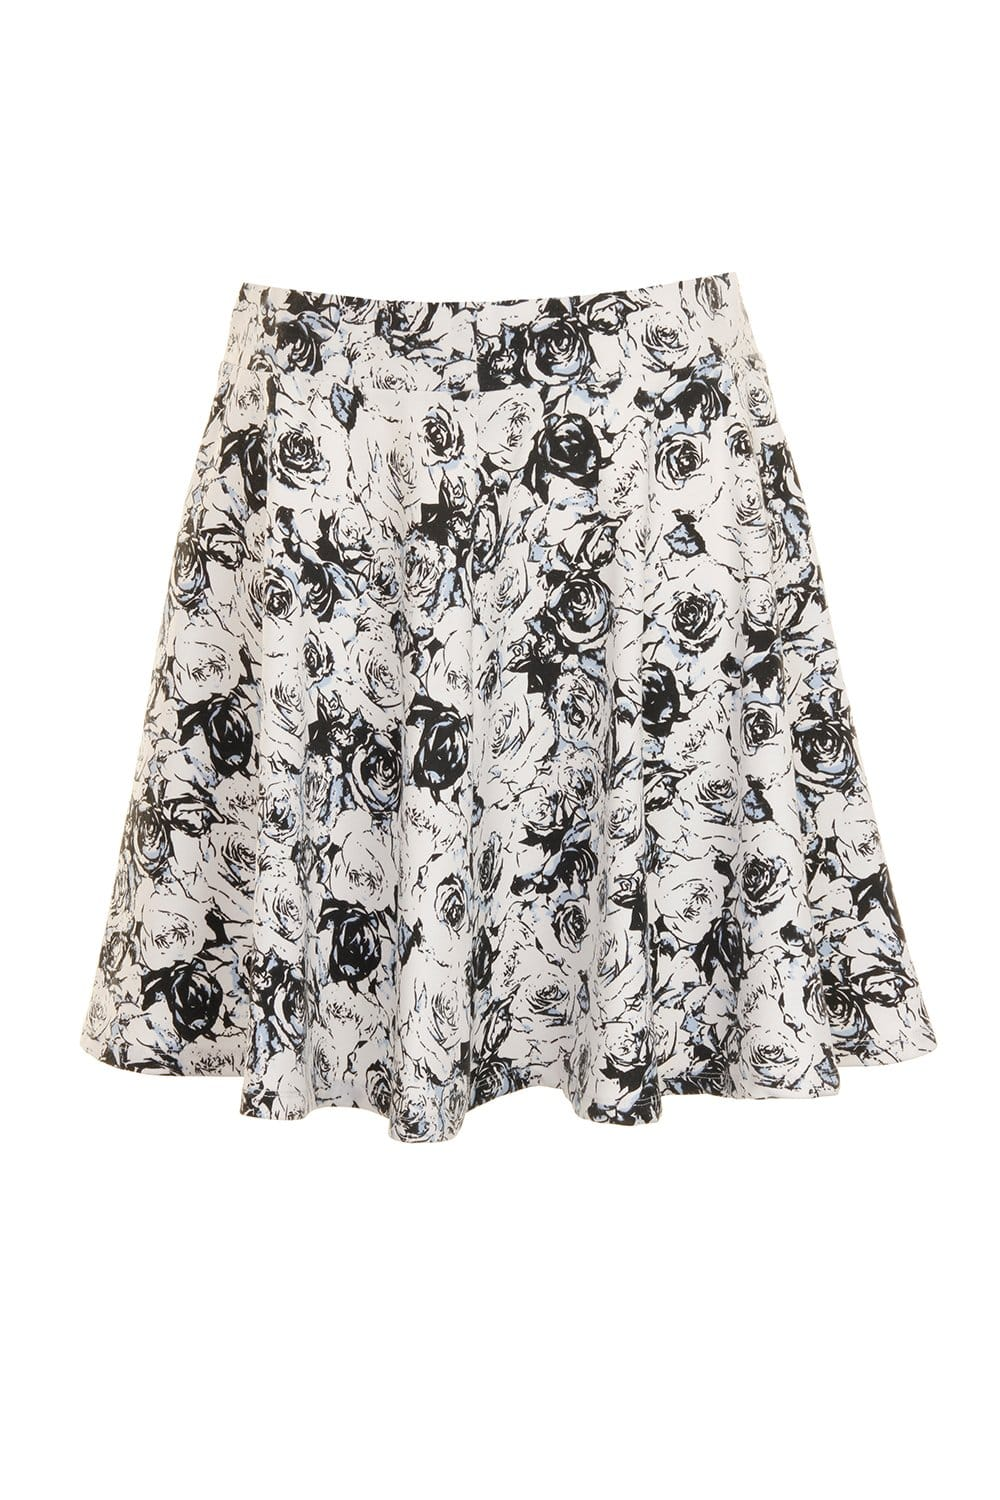 Outlet Girls On Film Black And White Floral A-Line Mini Skirt